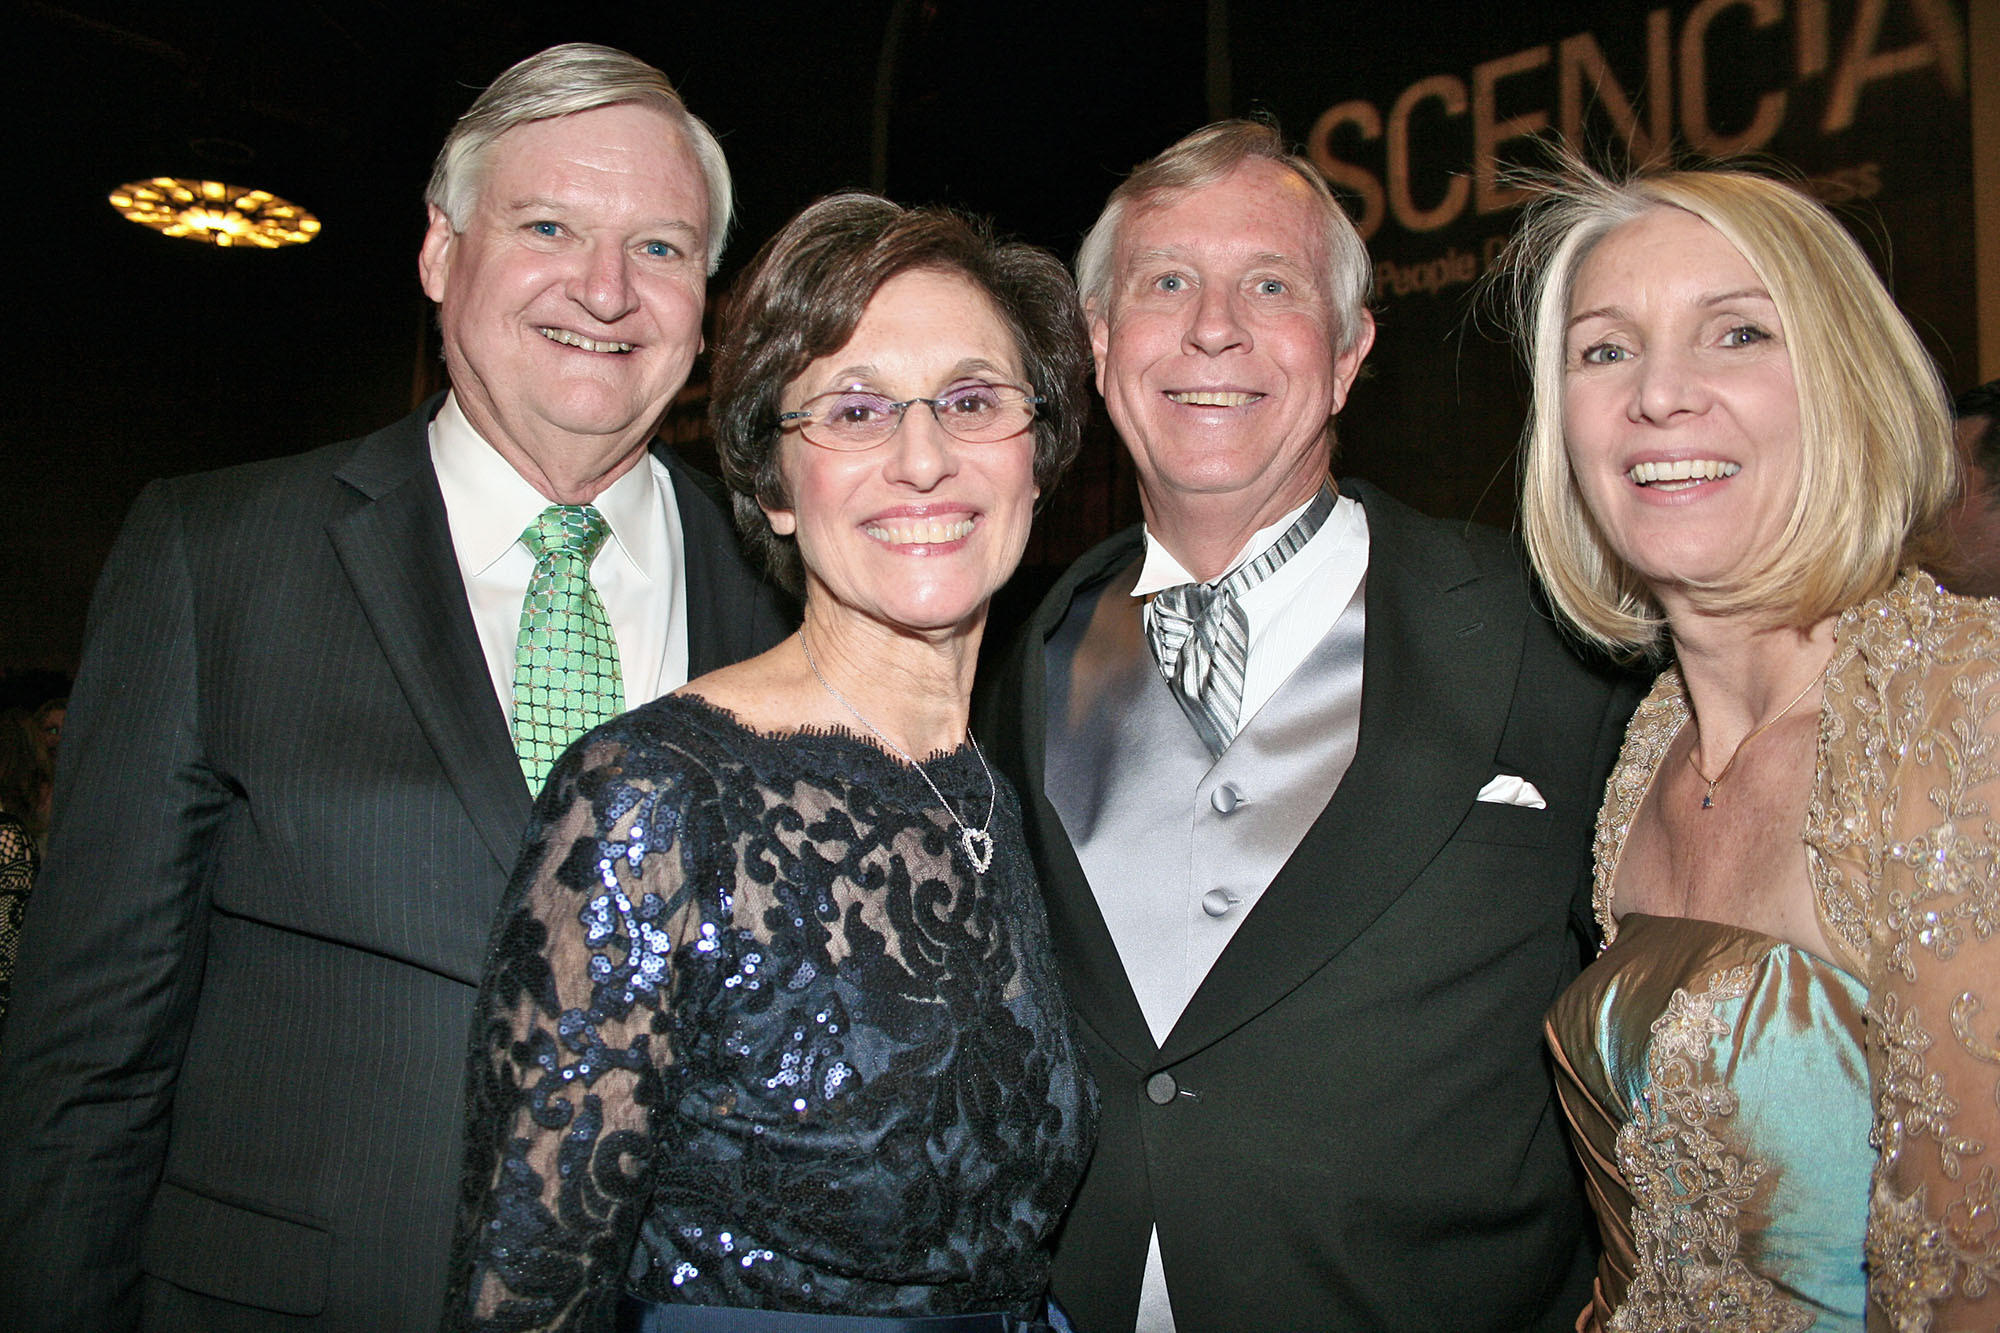 "Ascencia VIPs at the Gala ""All Aboard"" are, from left, Bruce Hinckley, wife and Gala Chairperson Debbie Hinckley, Board President Chip Stone with wife Nancy Stone."